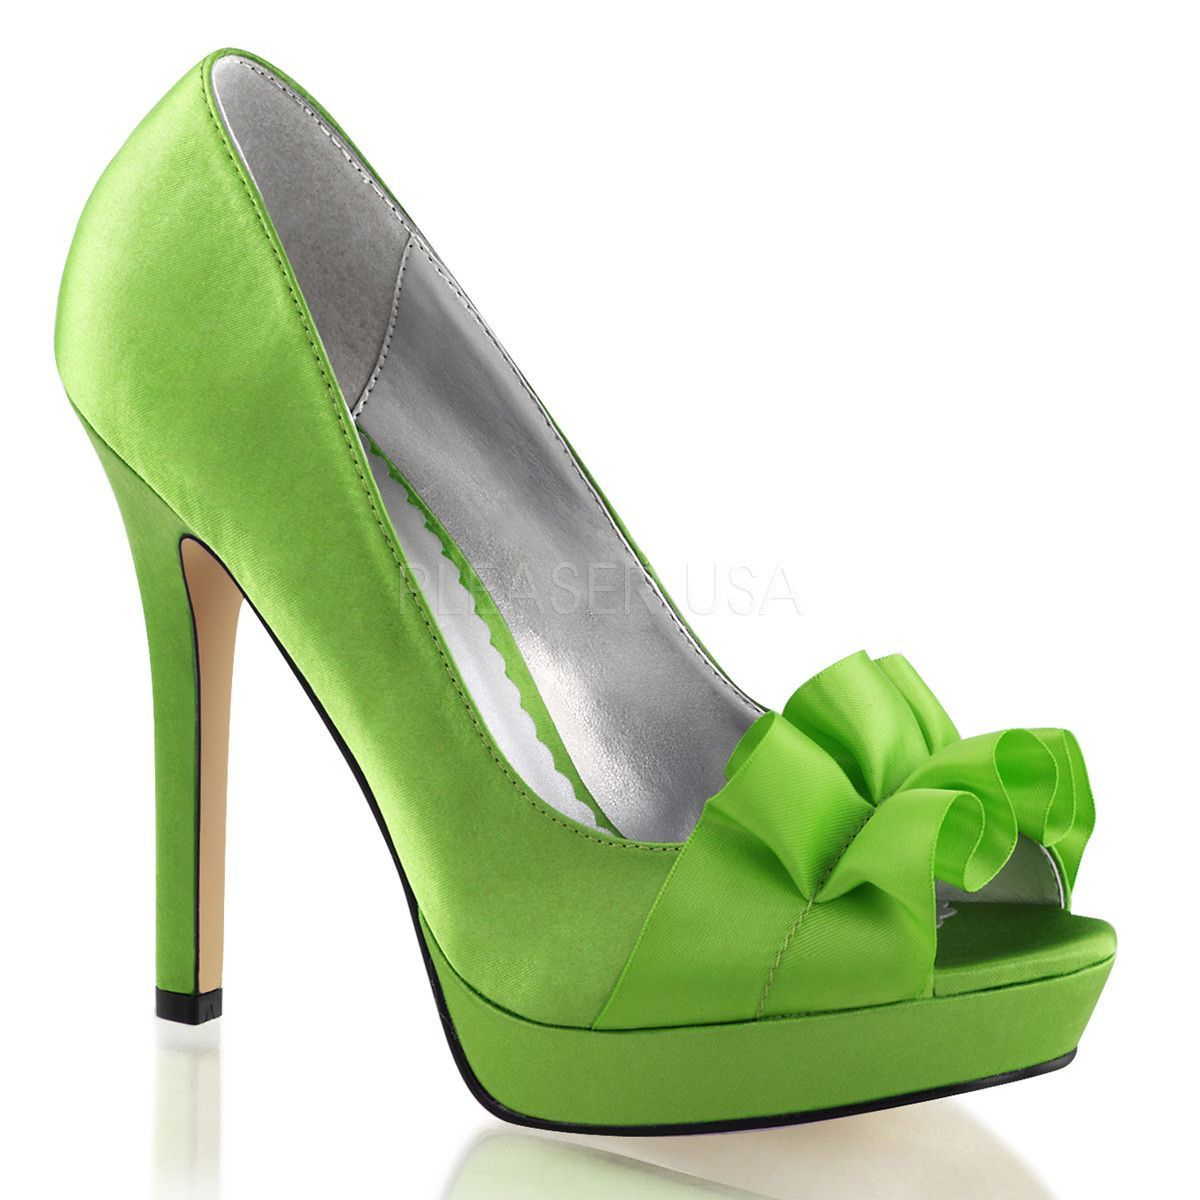 Fabulicious Platform Peep Toe Pump With Ribbon Across Vamp Apple Green Satin